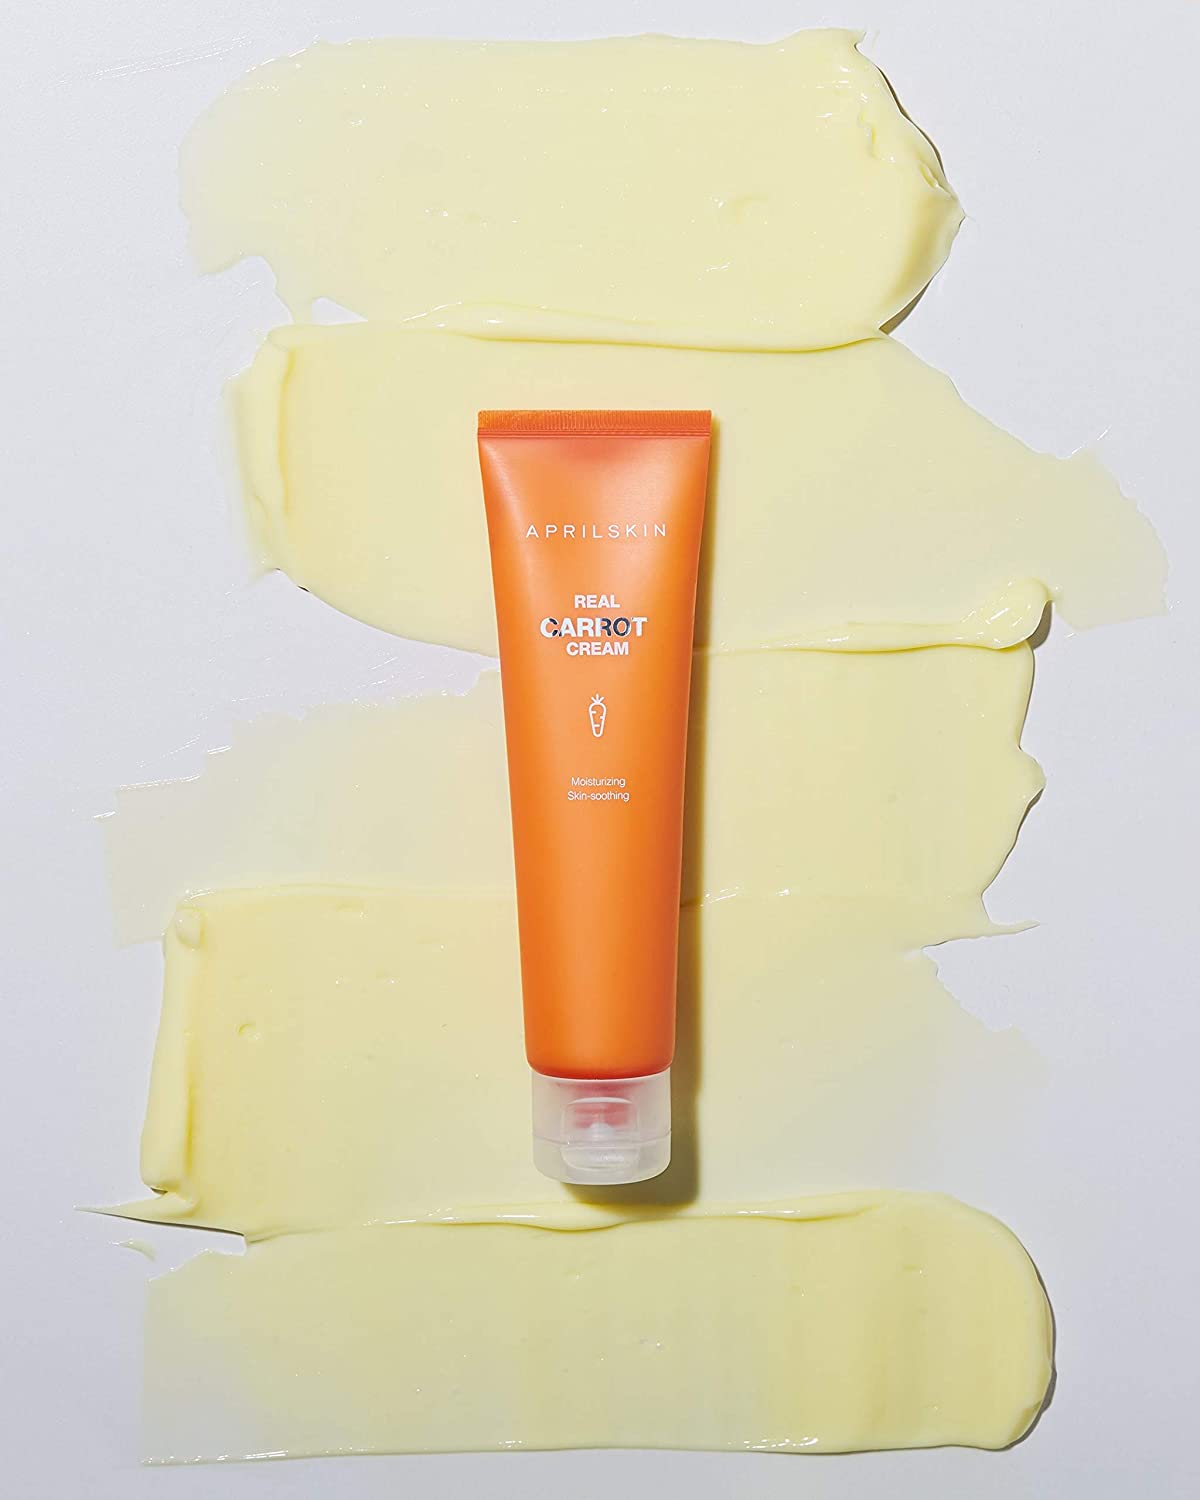 APRILSKIN Carrot Blemish Cream | Oily, sensitive, acne-prone skin | Removes blemishes, moisture balancing & skin protecting with M-Peptide | 2.02 oz | Cruelty-Free, No sulfates and artificial fragrance